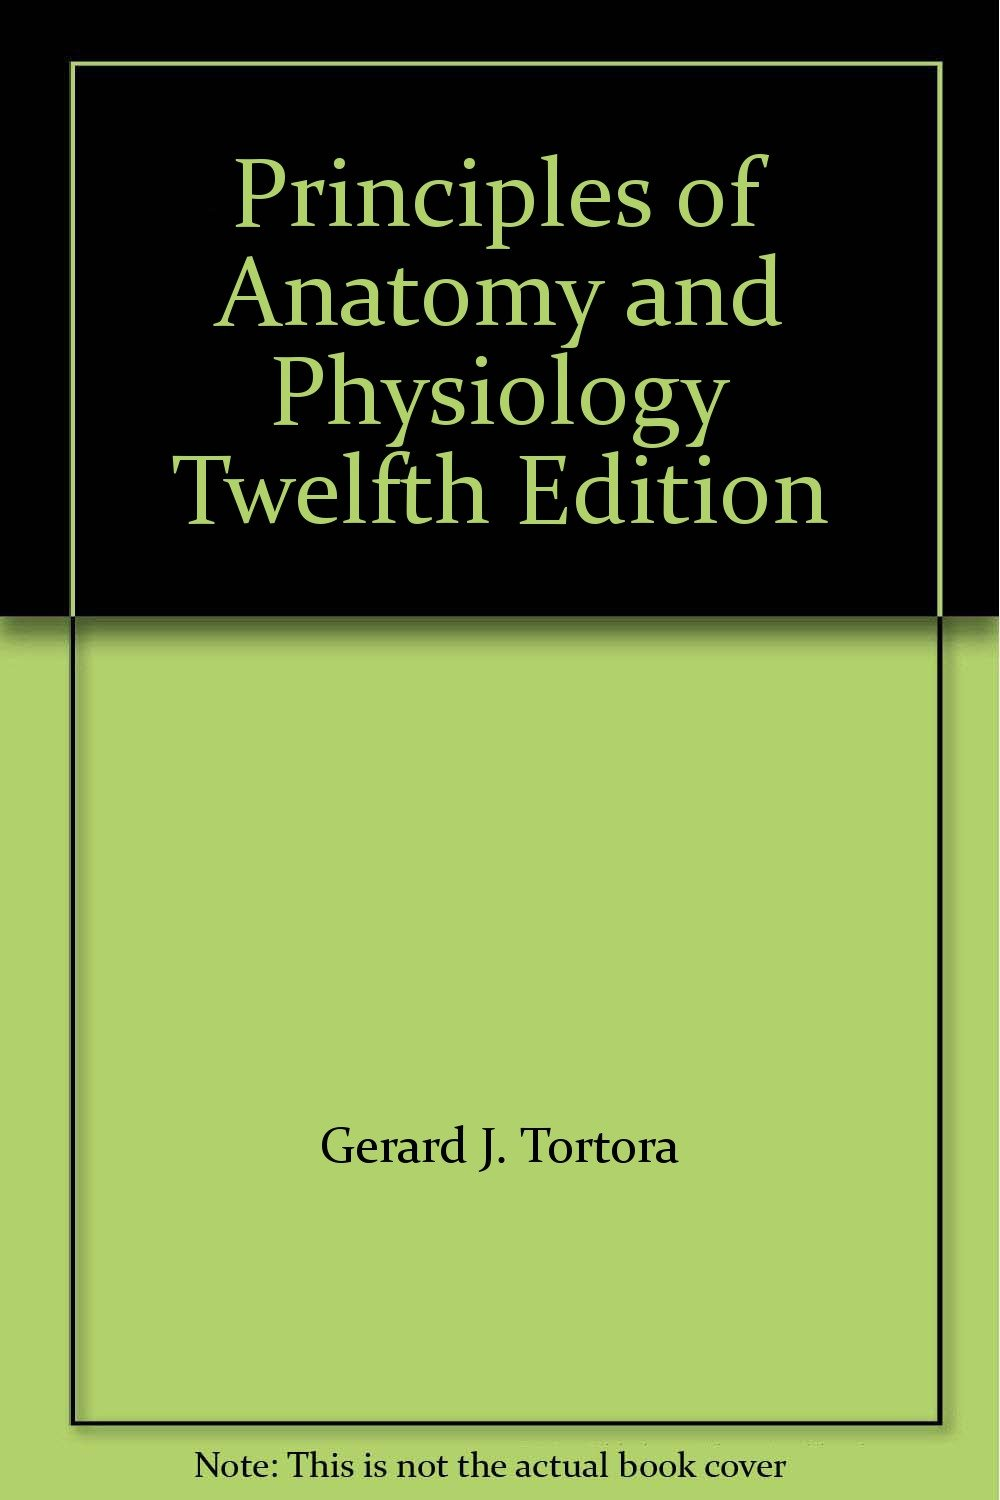 Principles of Anatomy and Physiology Twelfth Edition: Amazon.co.uk ...